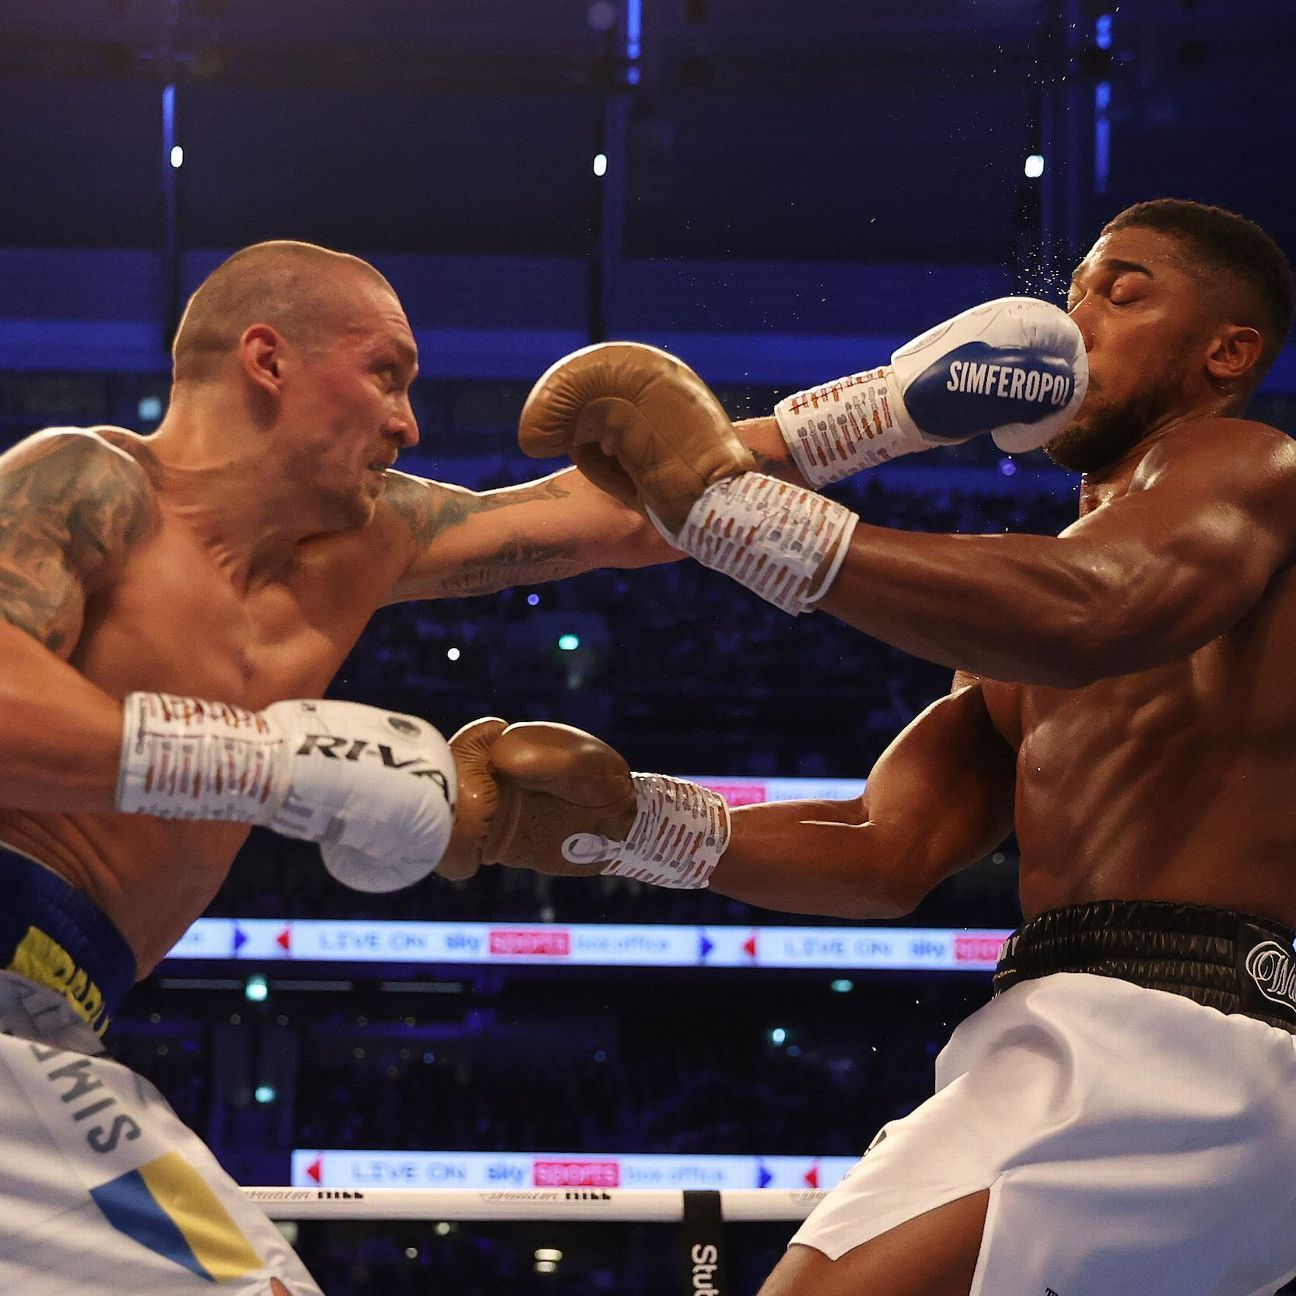 Joshua exercises right to title rematch vs. Usyk